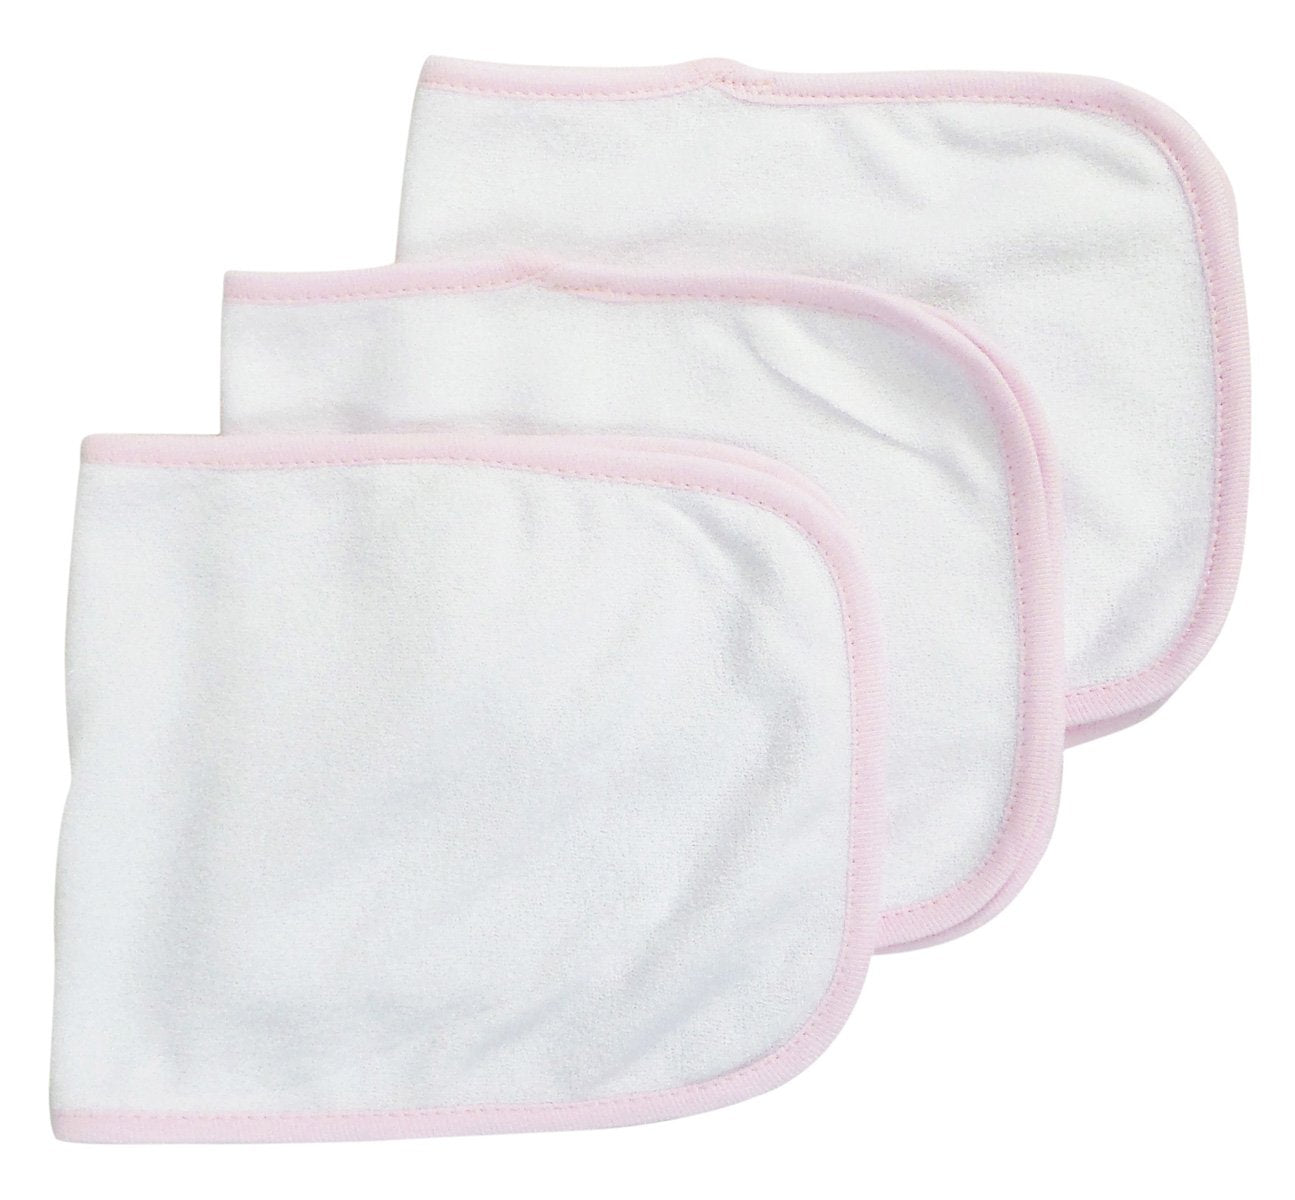 Bambini Baby Burpcloth With Pink Trim (Pack of 3) - Baby World Inc